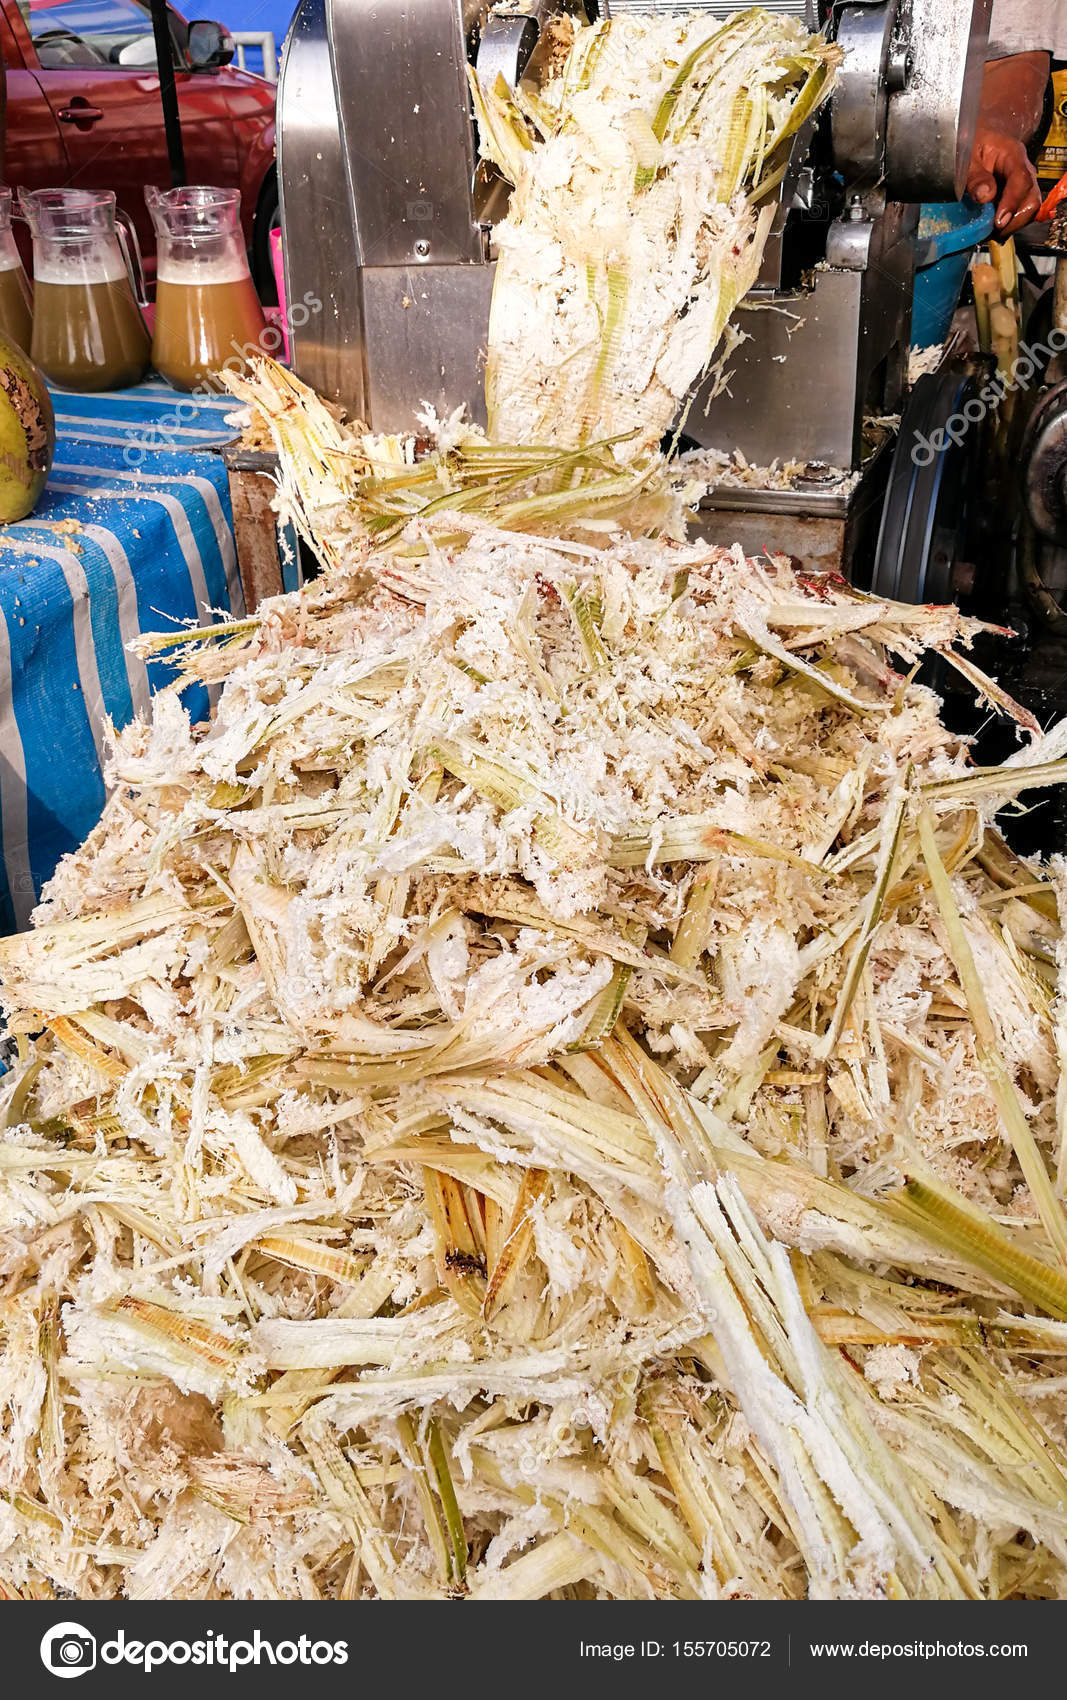 Sugarcane bagasse can be recycled as paper, fuel, renewable